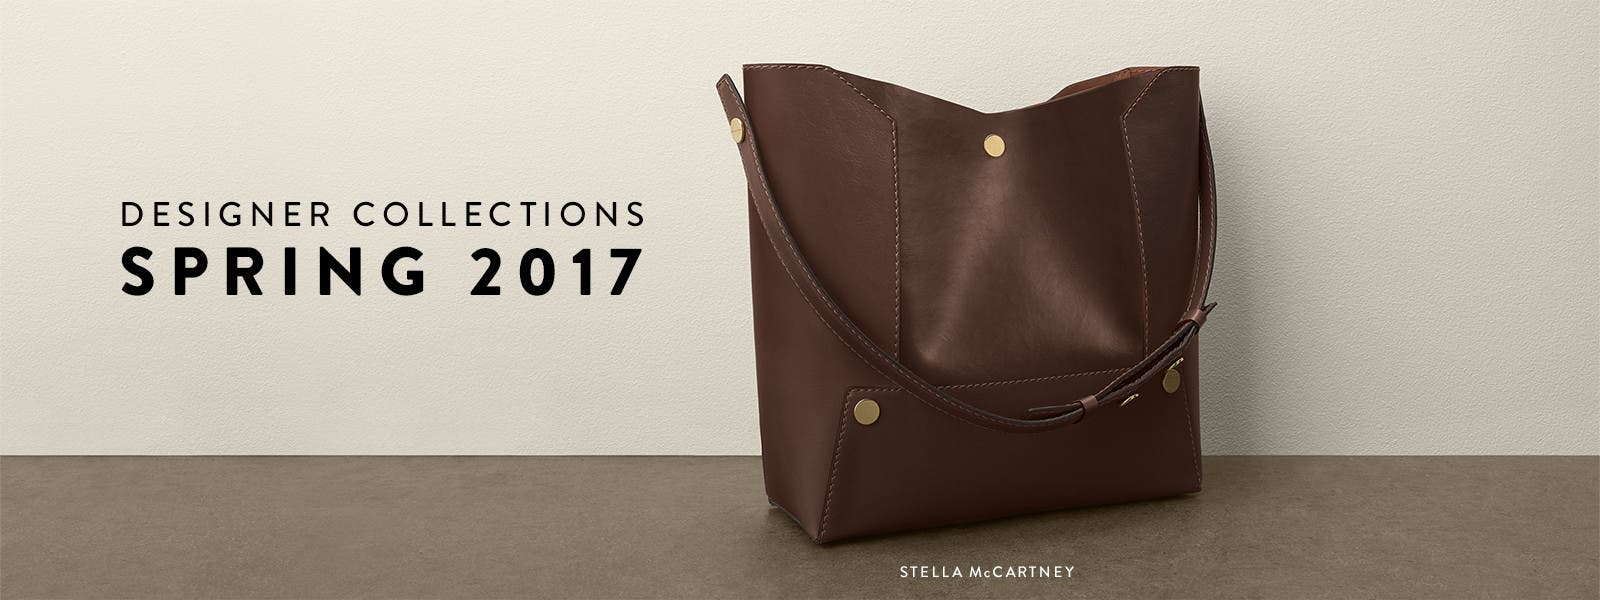 Spring 2017 designer collections trend guide.